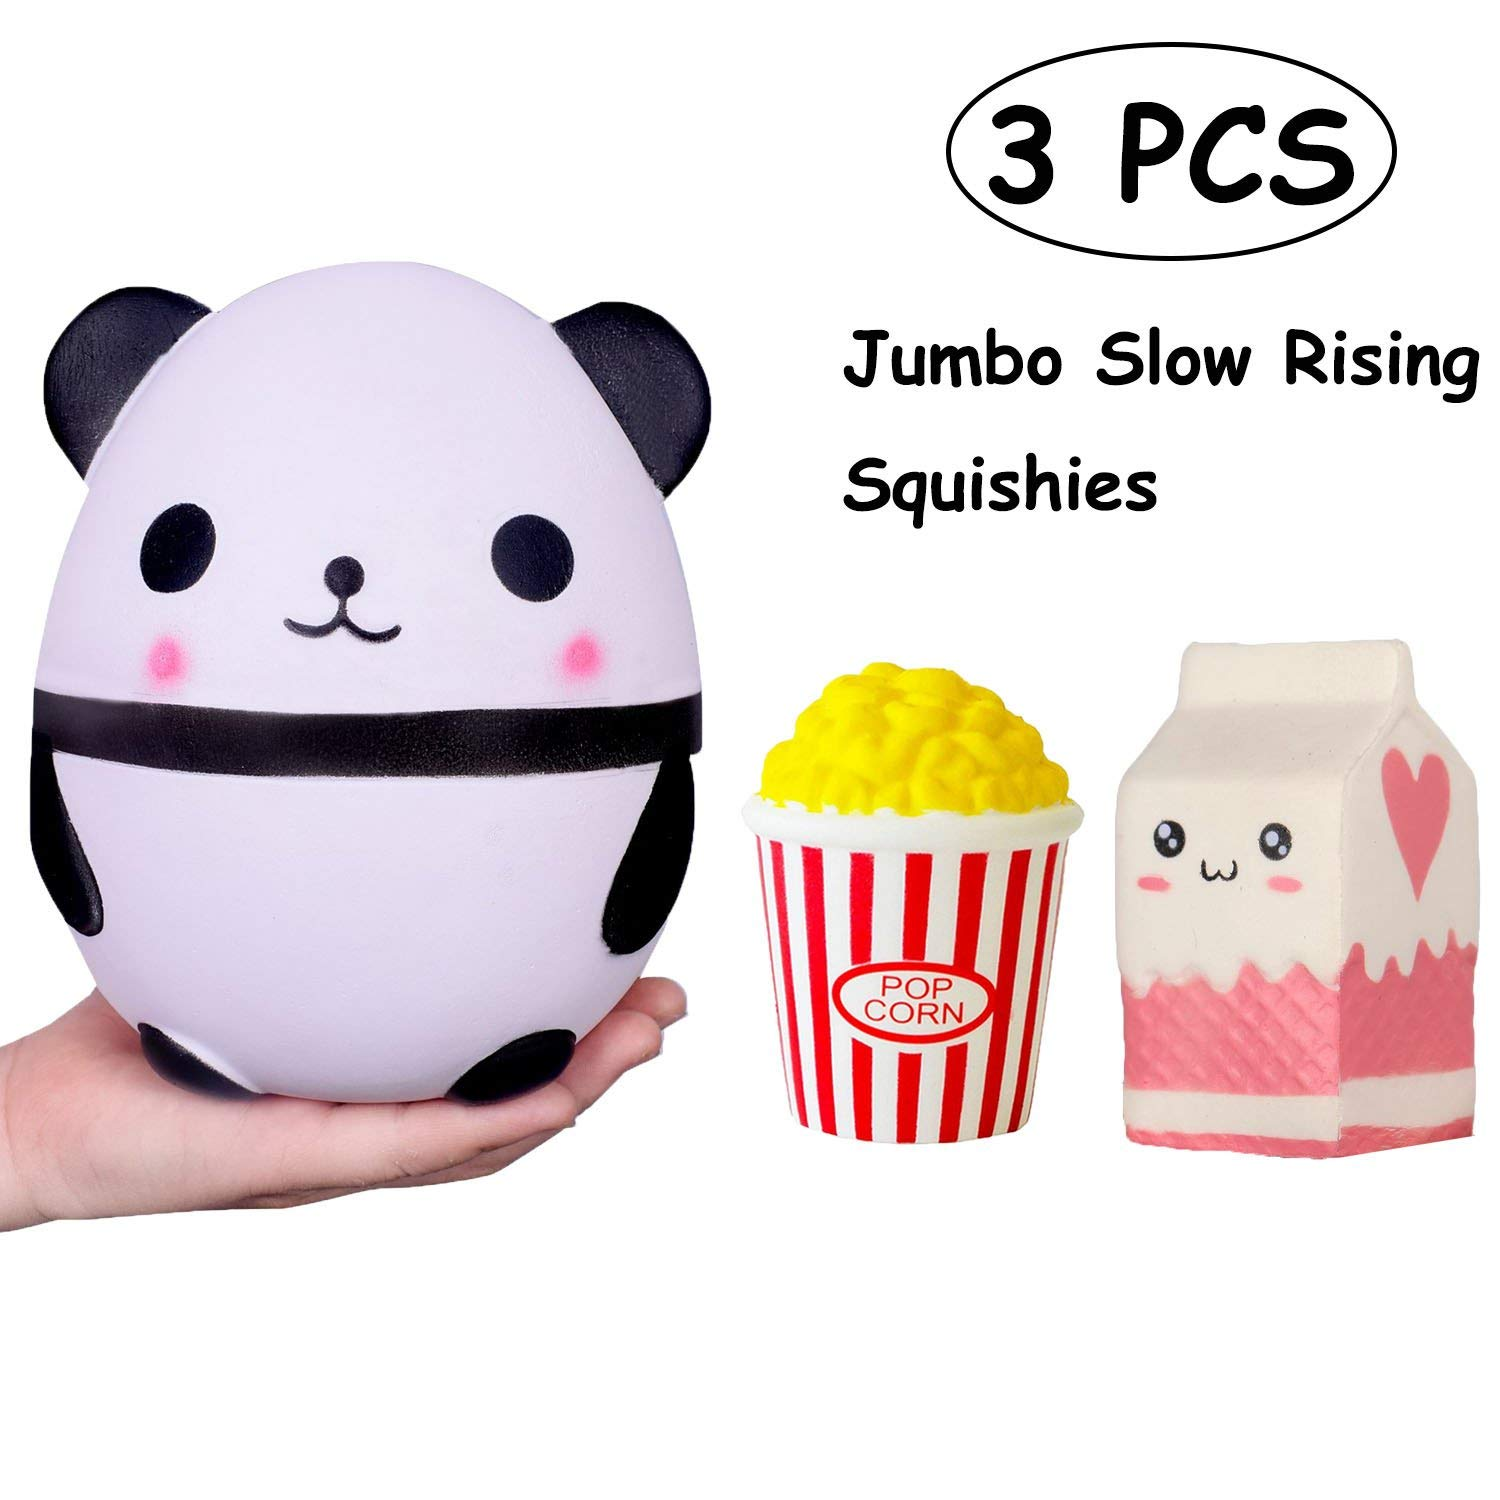 TOYHUYI Pack of 3 Jumbo Slow Rising Squishies Kawaii Popcorn Milk Box Panda figure Charms Scented Squeeze Toy, Stress Relief Toy For Fun